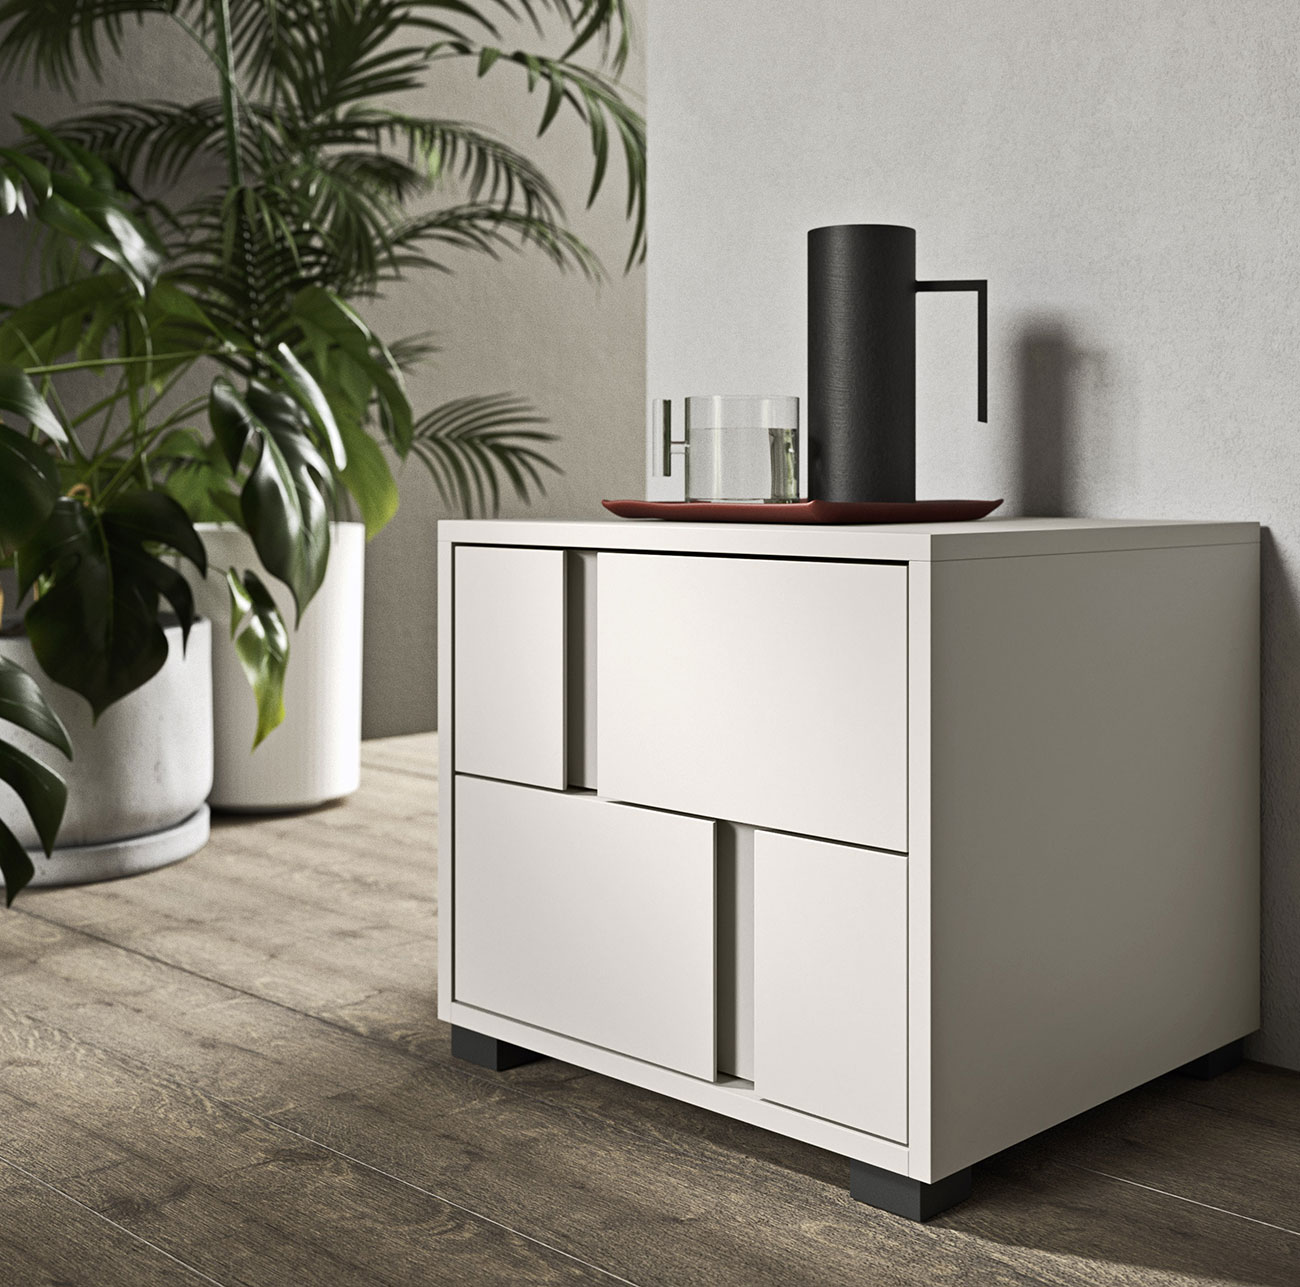 Contemporary design bedside with offset handle grips